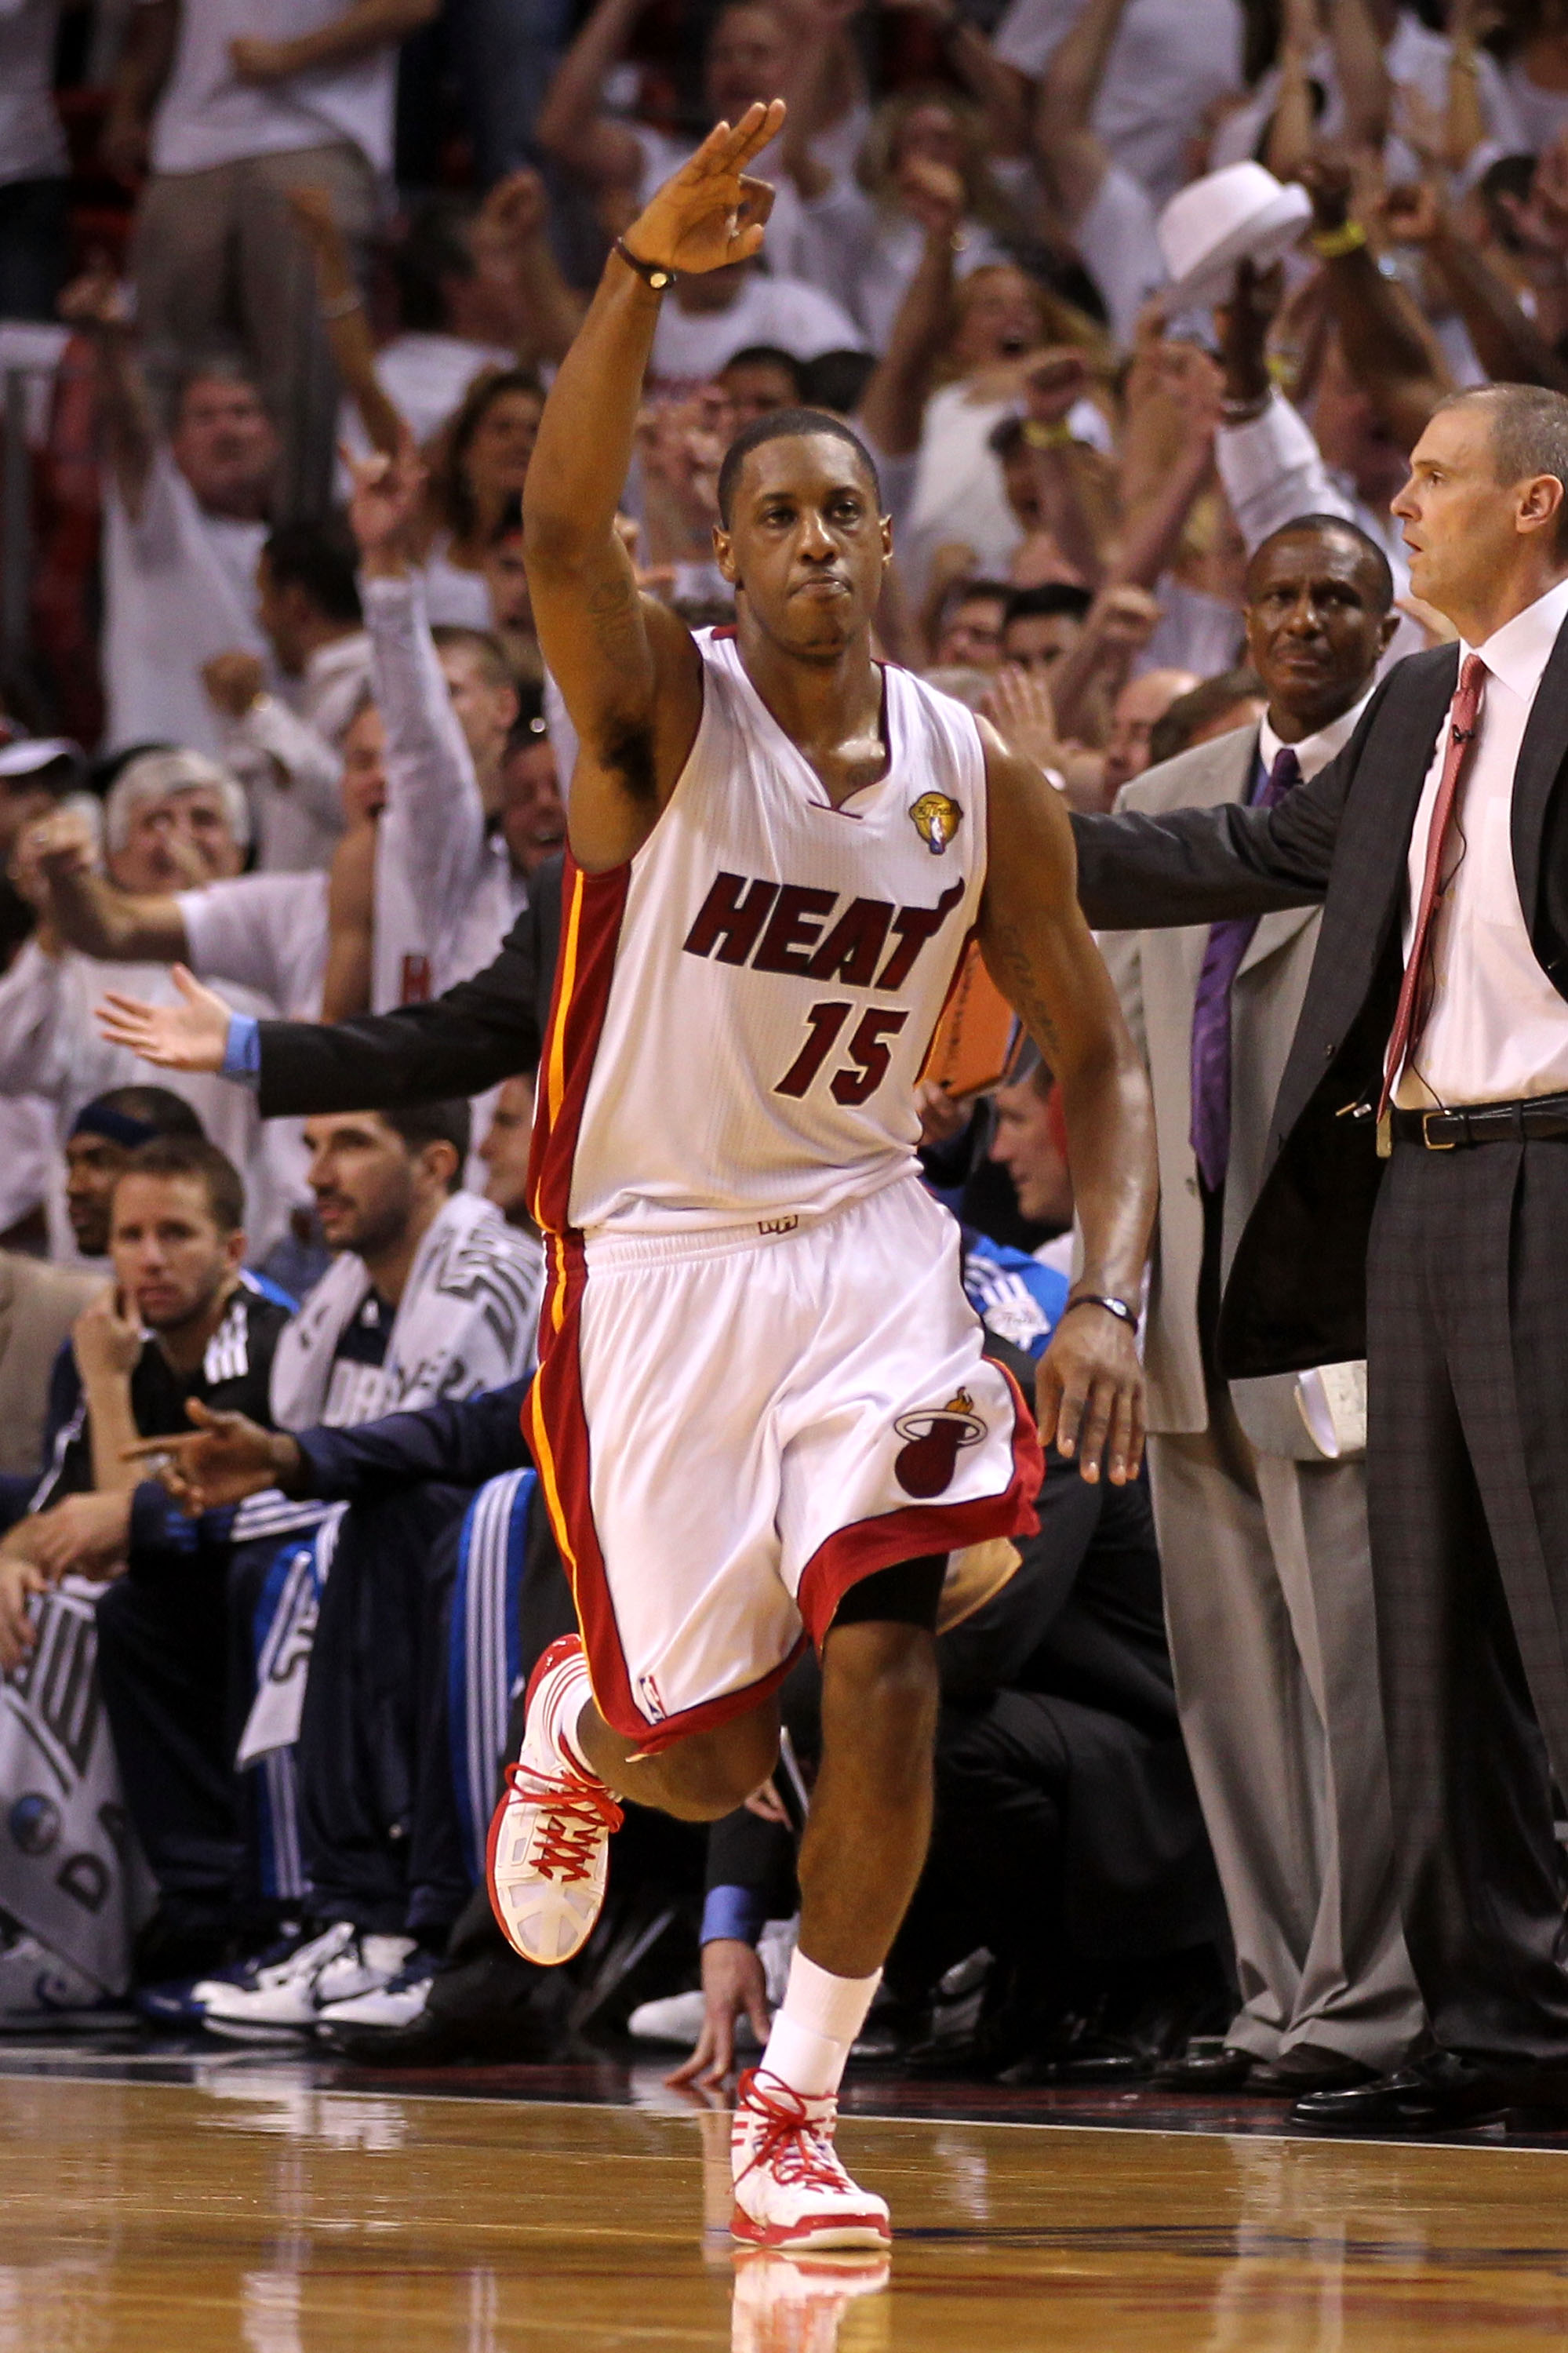 MIAMI, FL - JUNE 02:  Mario Chalmers #15 of the Miami Heat reacts against the Miami Heat in Game Two of the 2011 NBA Finals at American Airlines Arena on June 2, 2011 in Miami, Florida. The Mavericks won 95-93. NOTE TO USER: User expressly acknowledges an